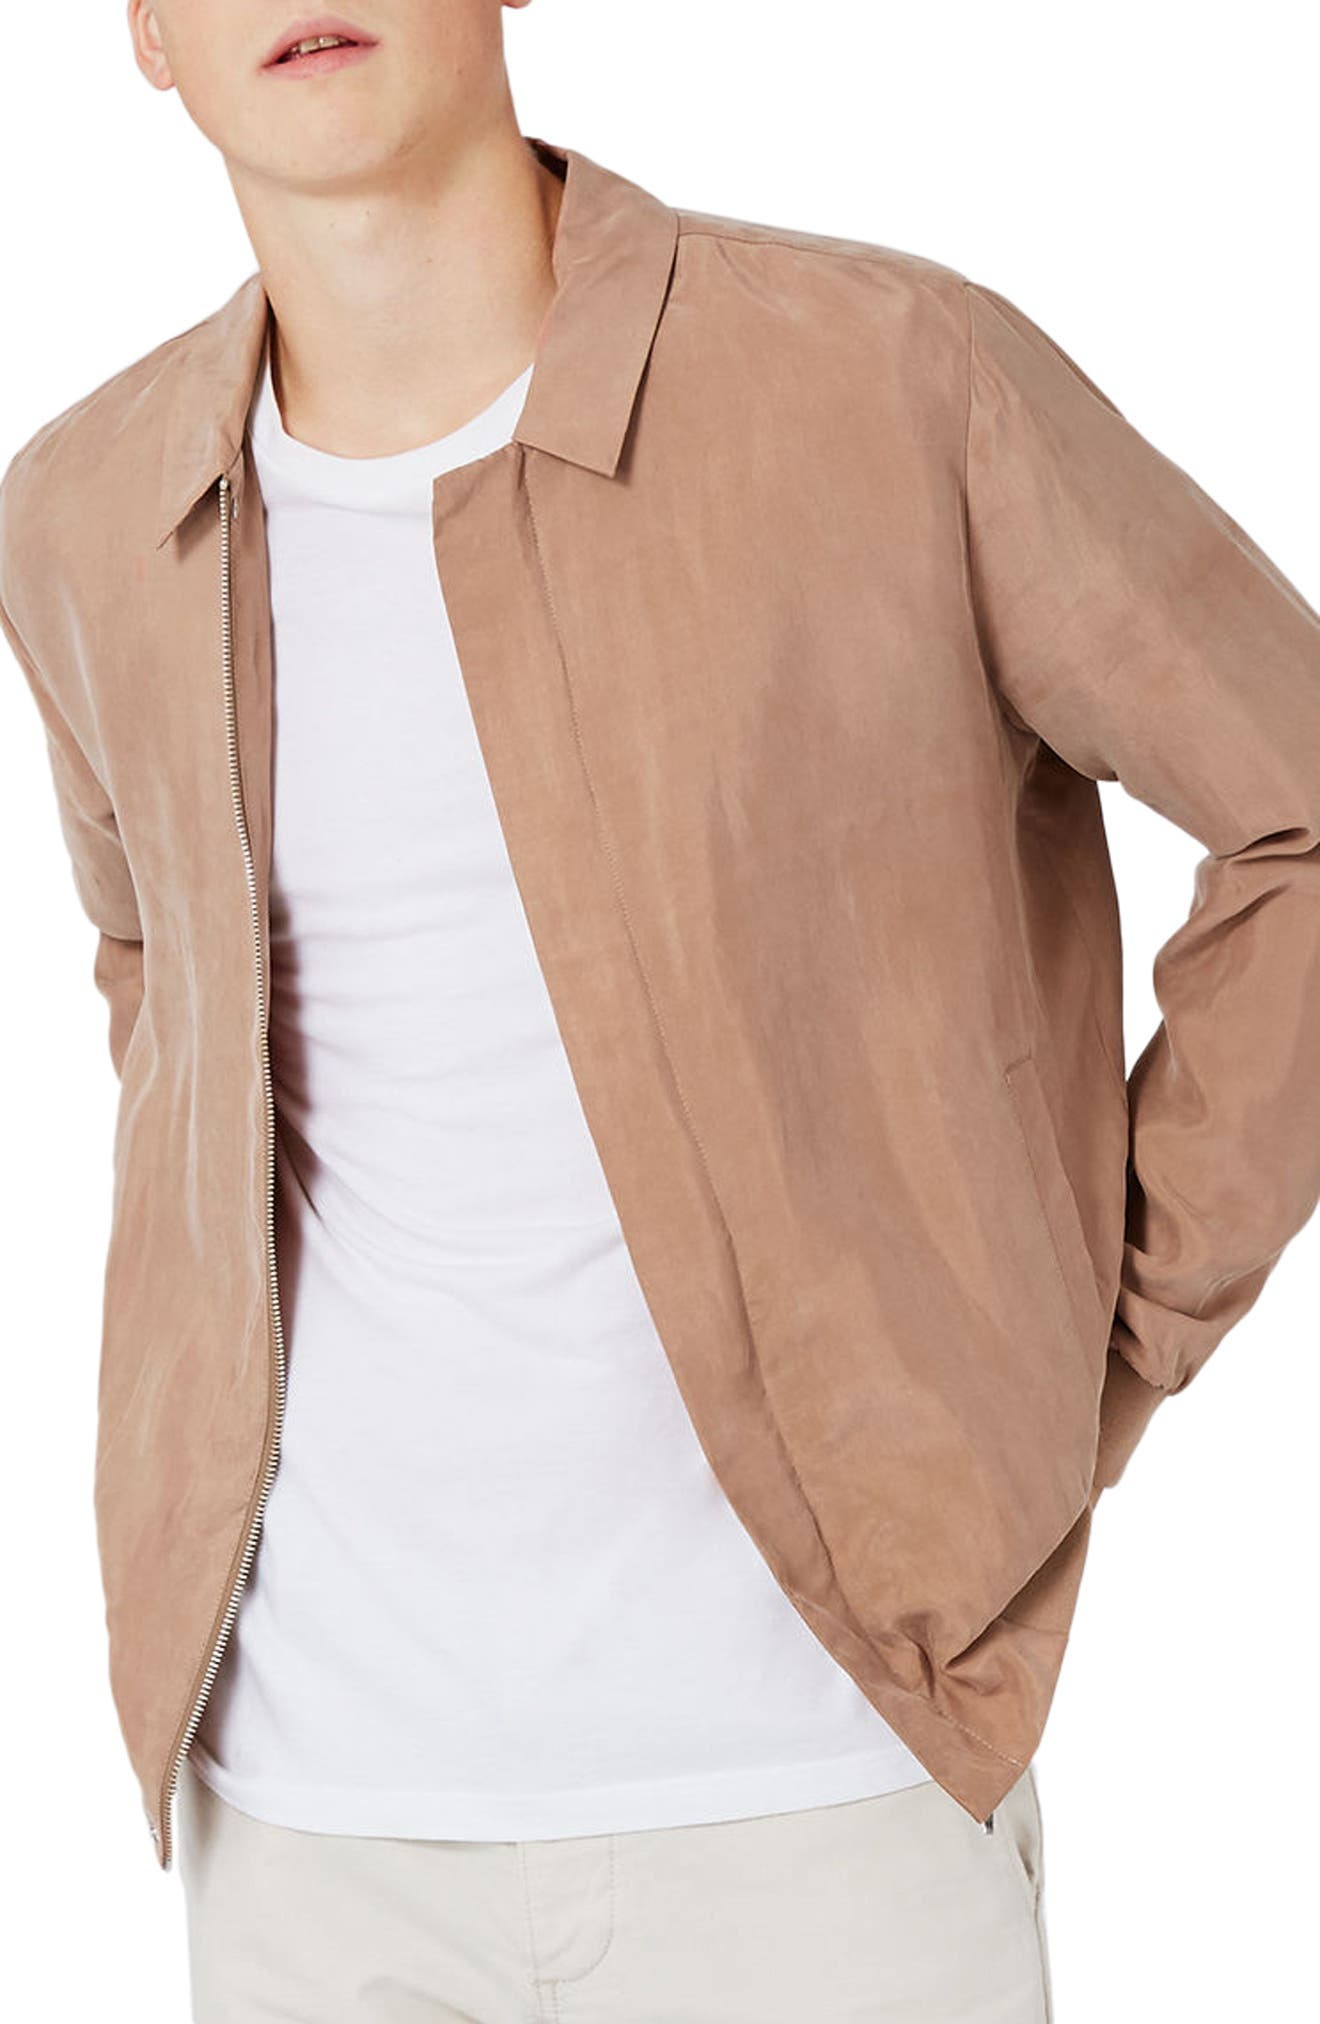 Coach's Bomber Jacket,                         Main,                         color, Pink